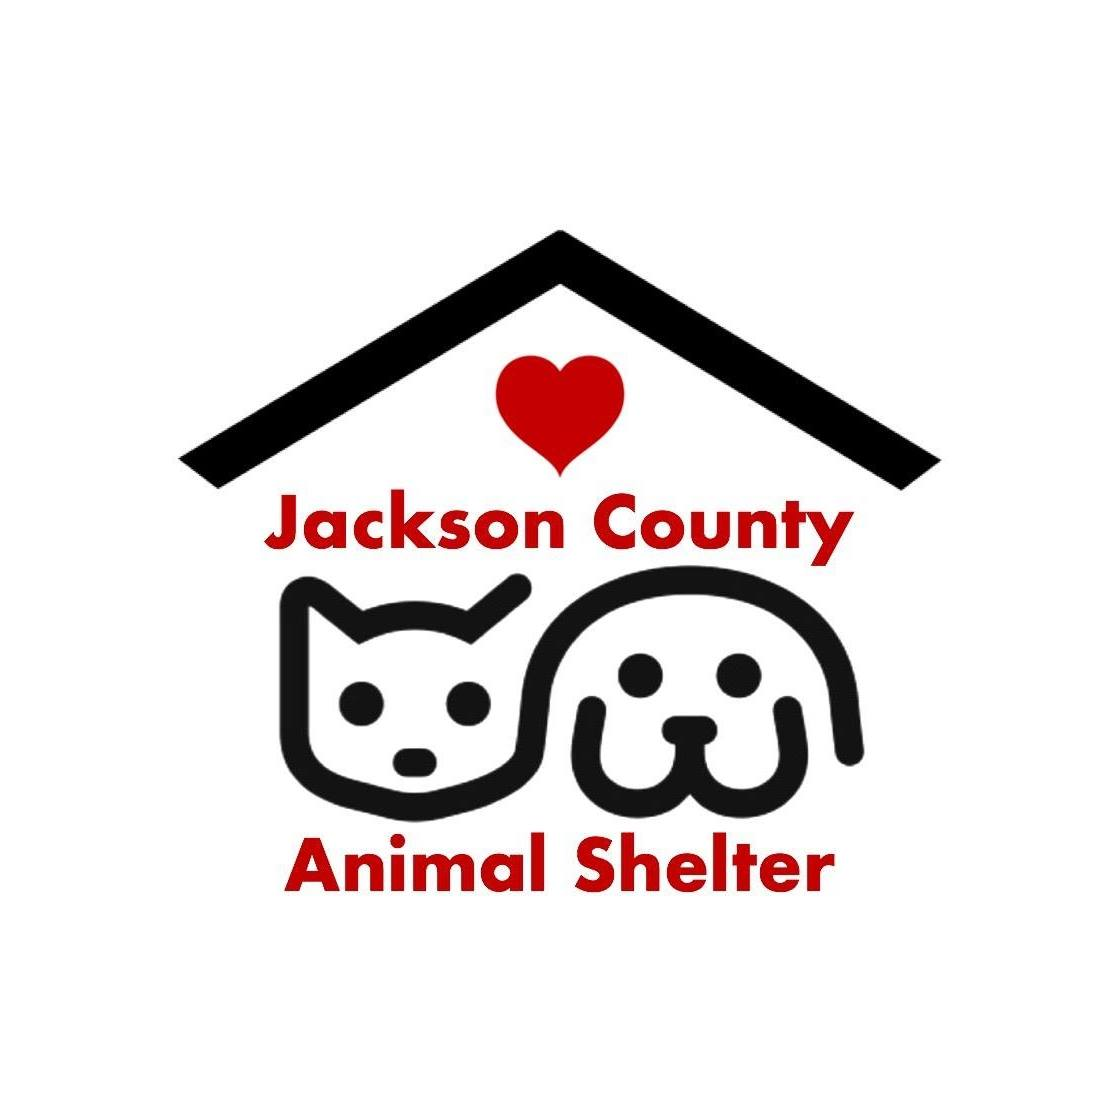 Jackson County Animal Shelter_1558731312796.jpg.jpg